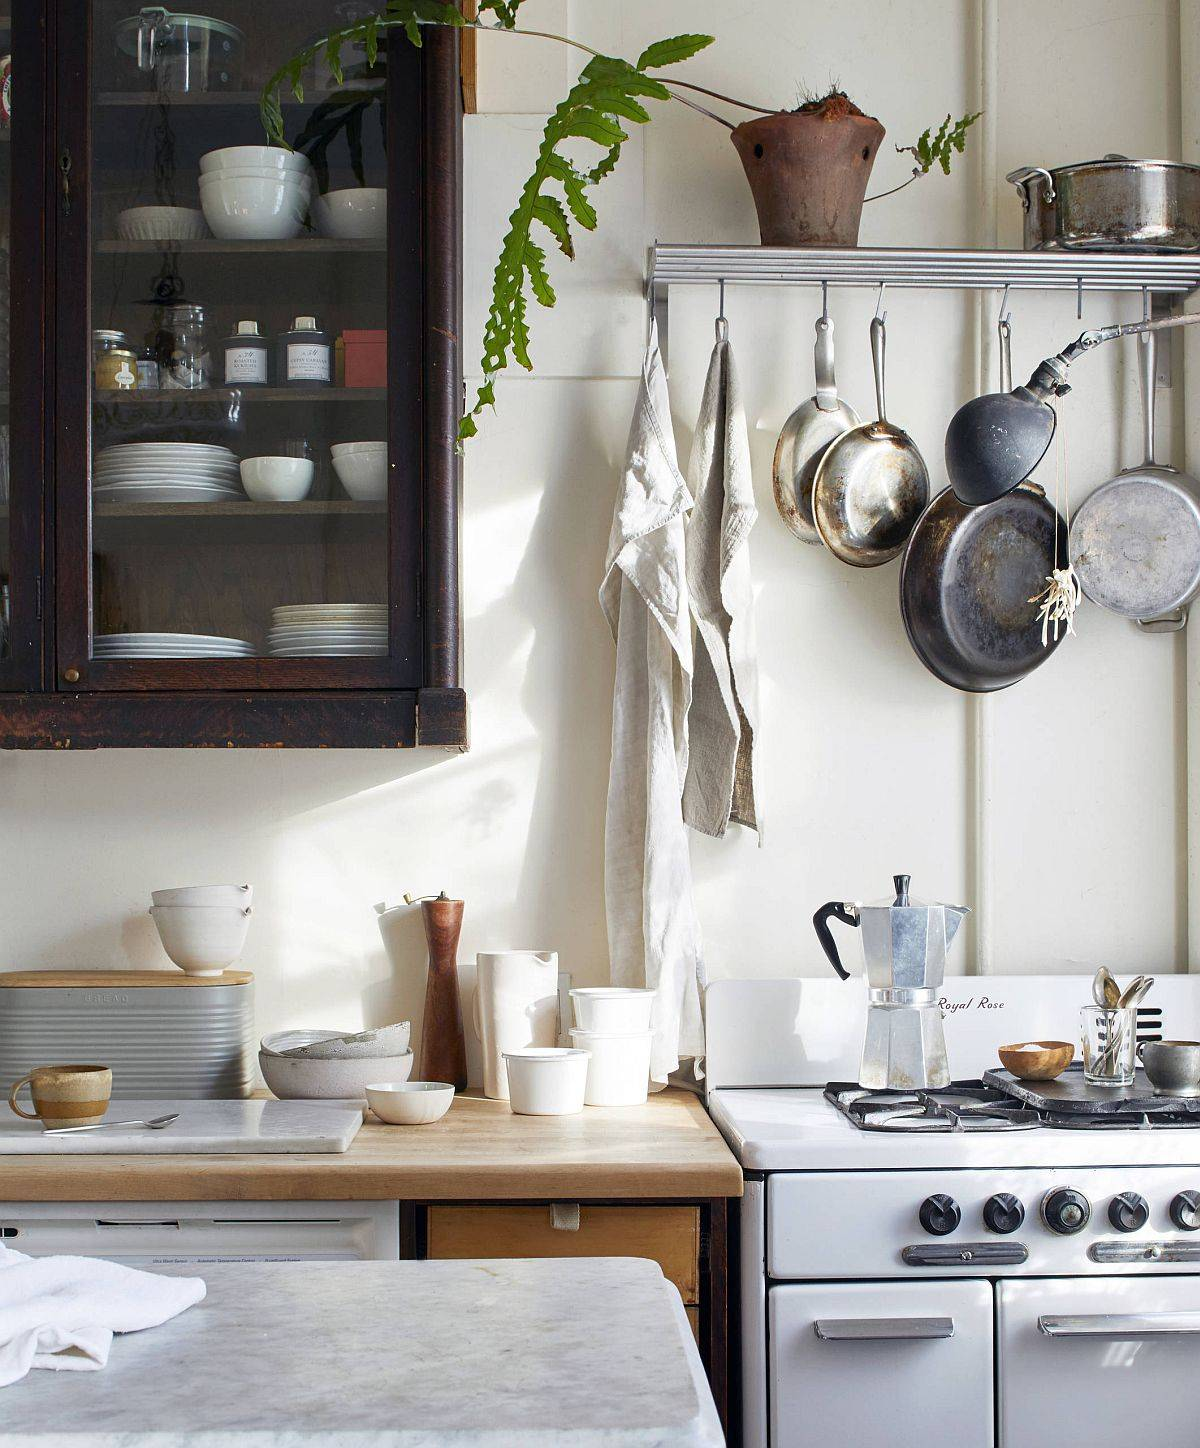 Simple-shelf-with-rails-also-allows-you-to-hang-pots-and-pans-with-ease-37702